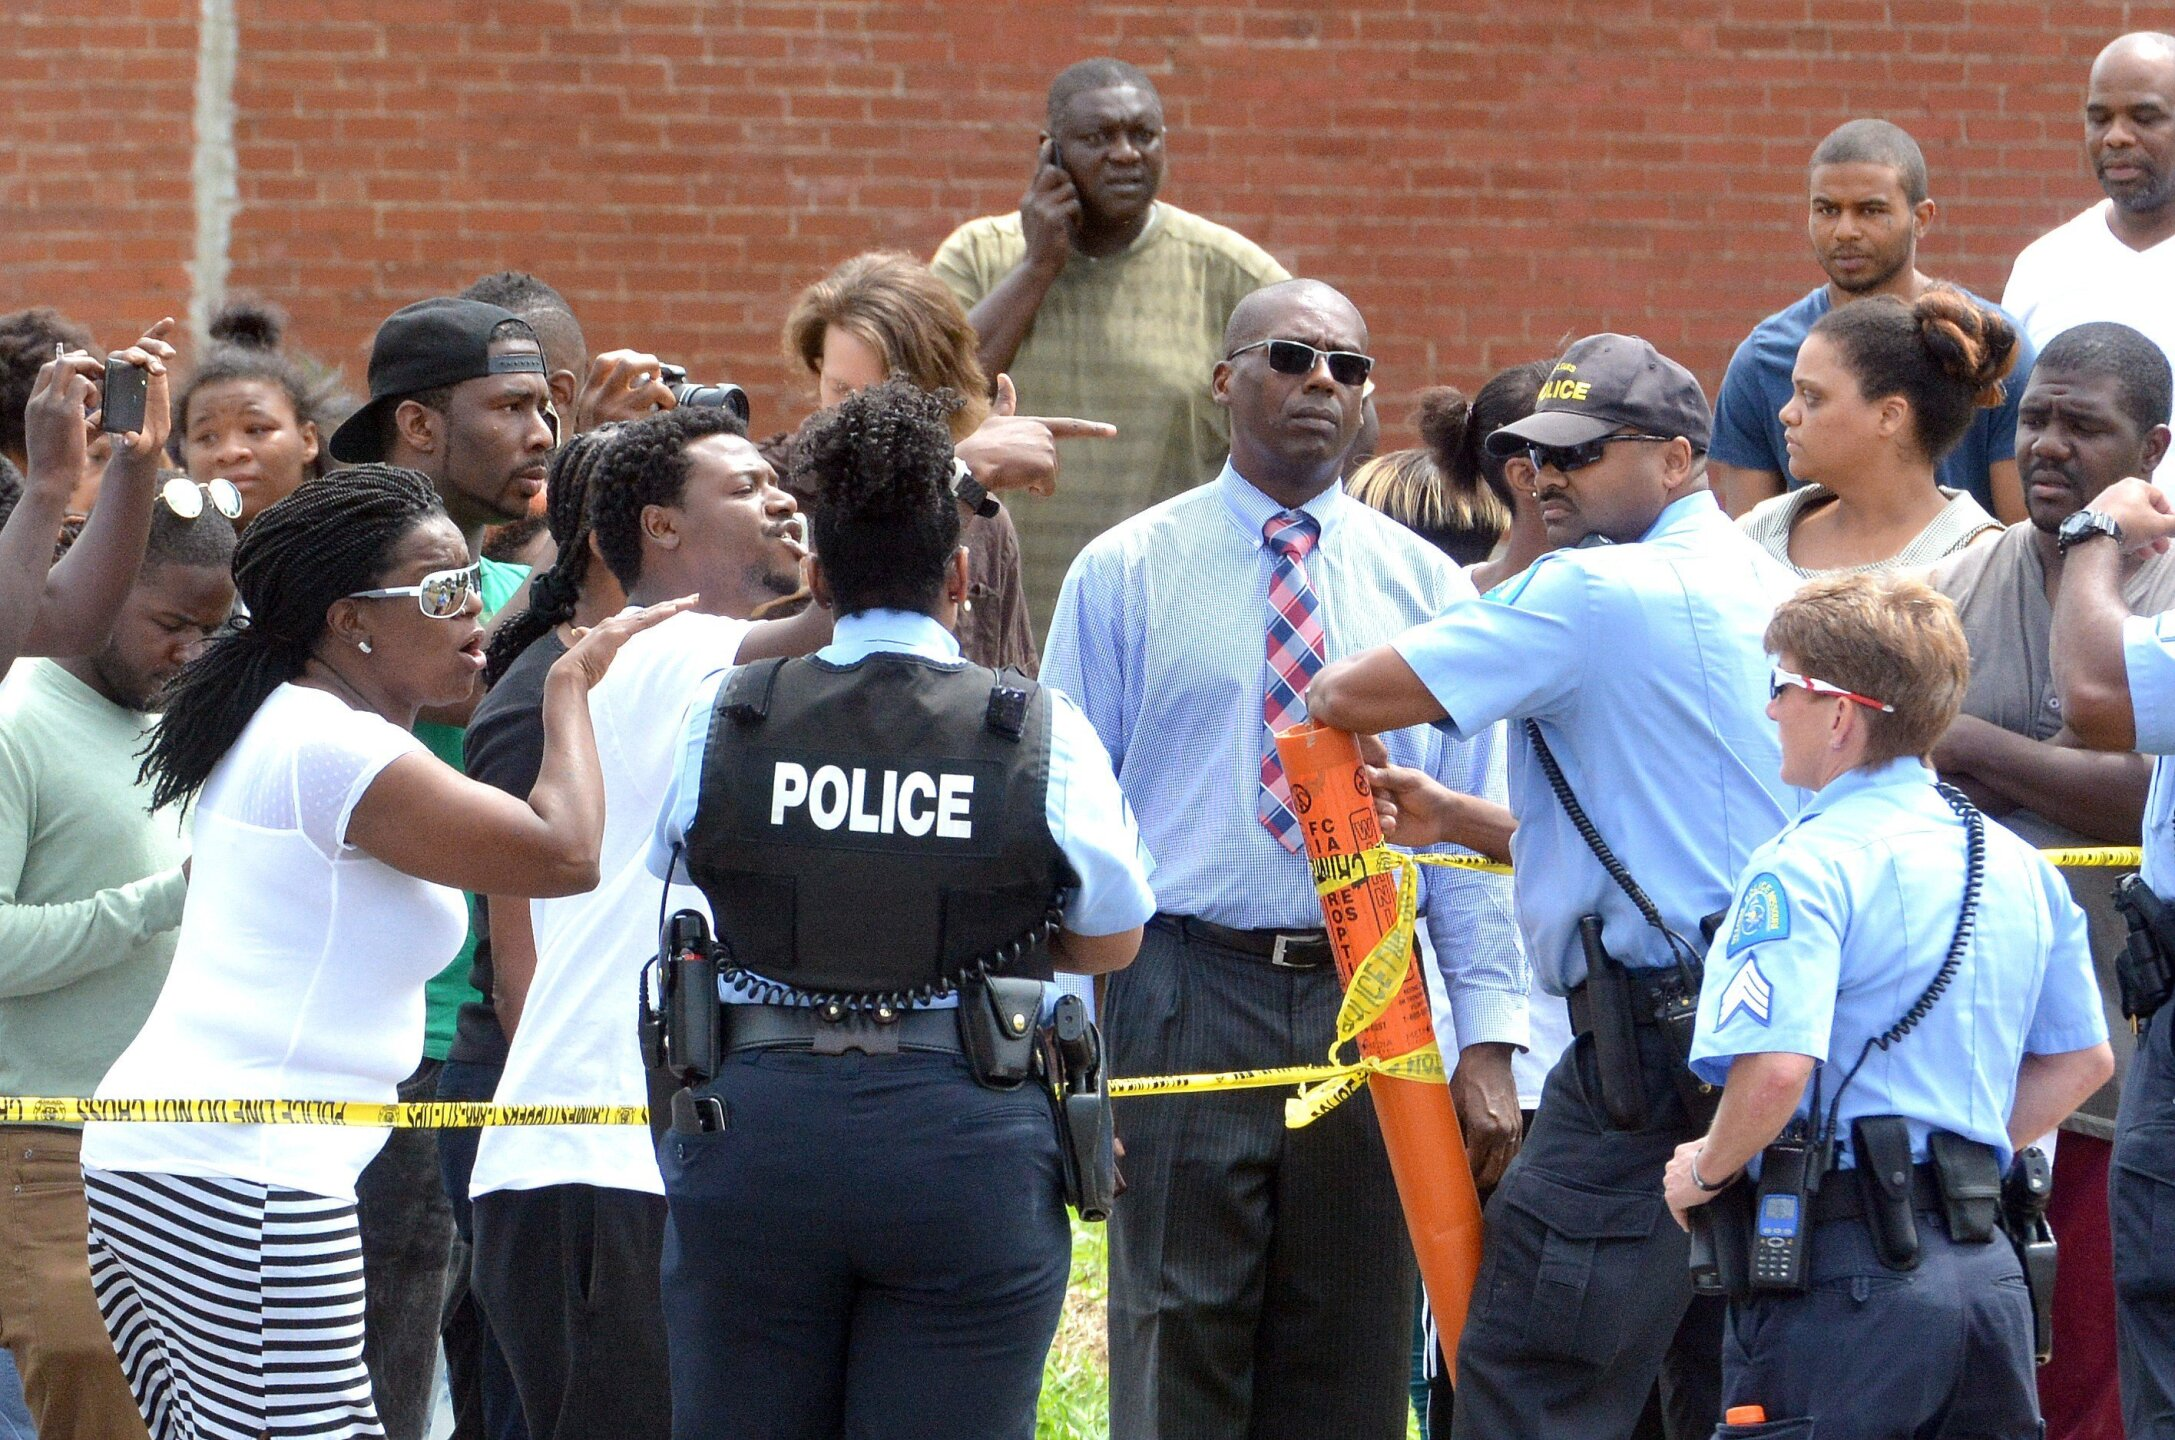 Photos: St. Louis police use tear gas on demonstrators protesting fatalshooting